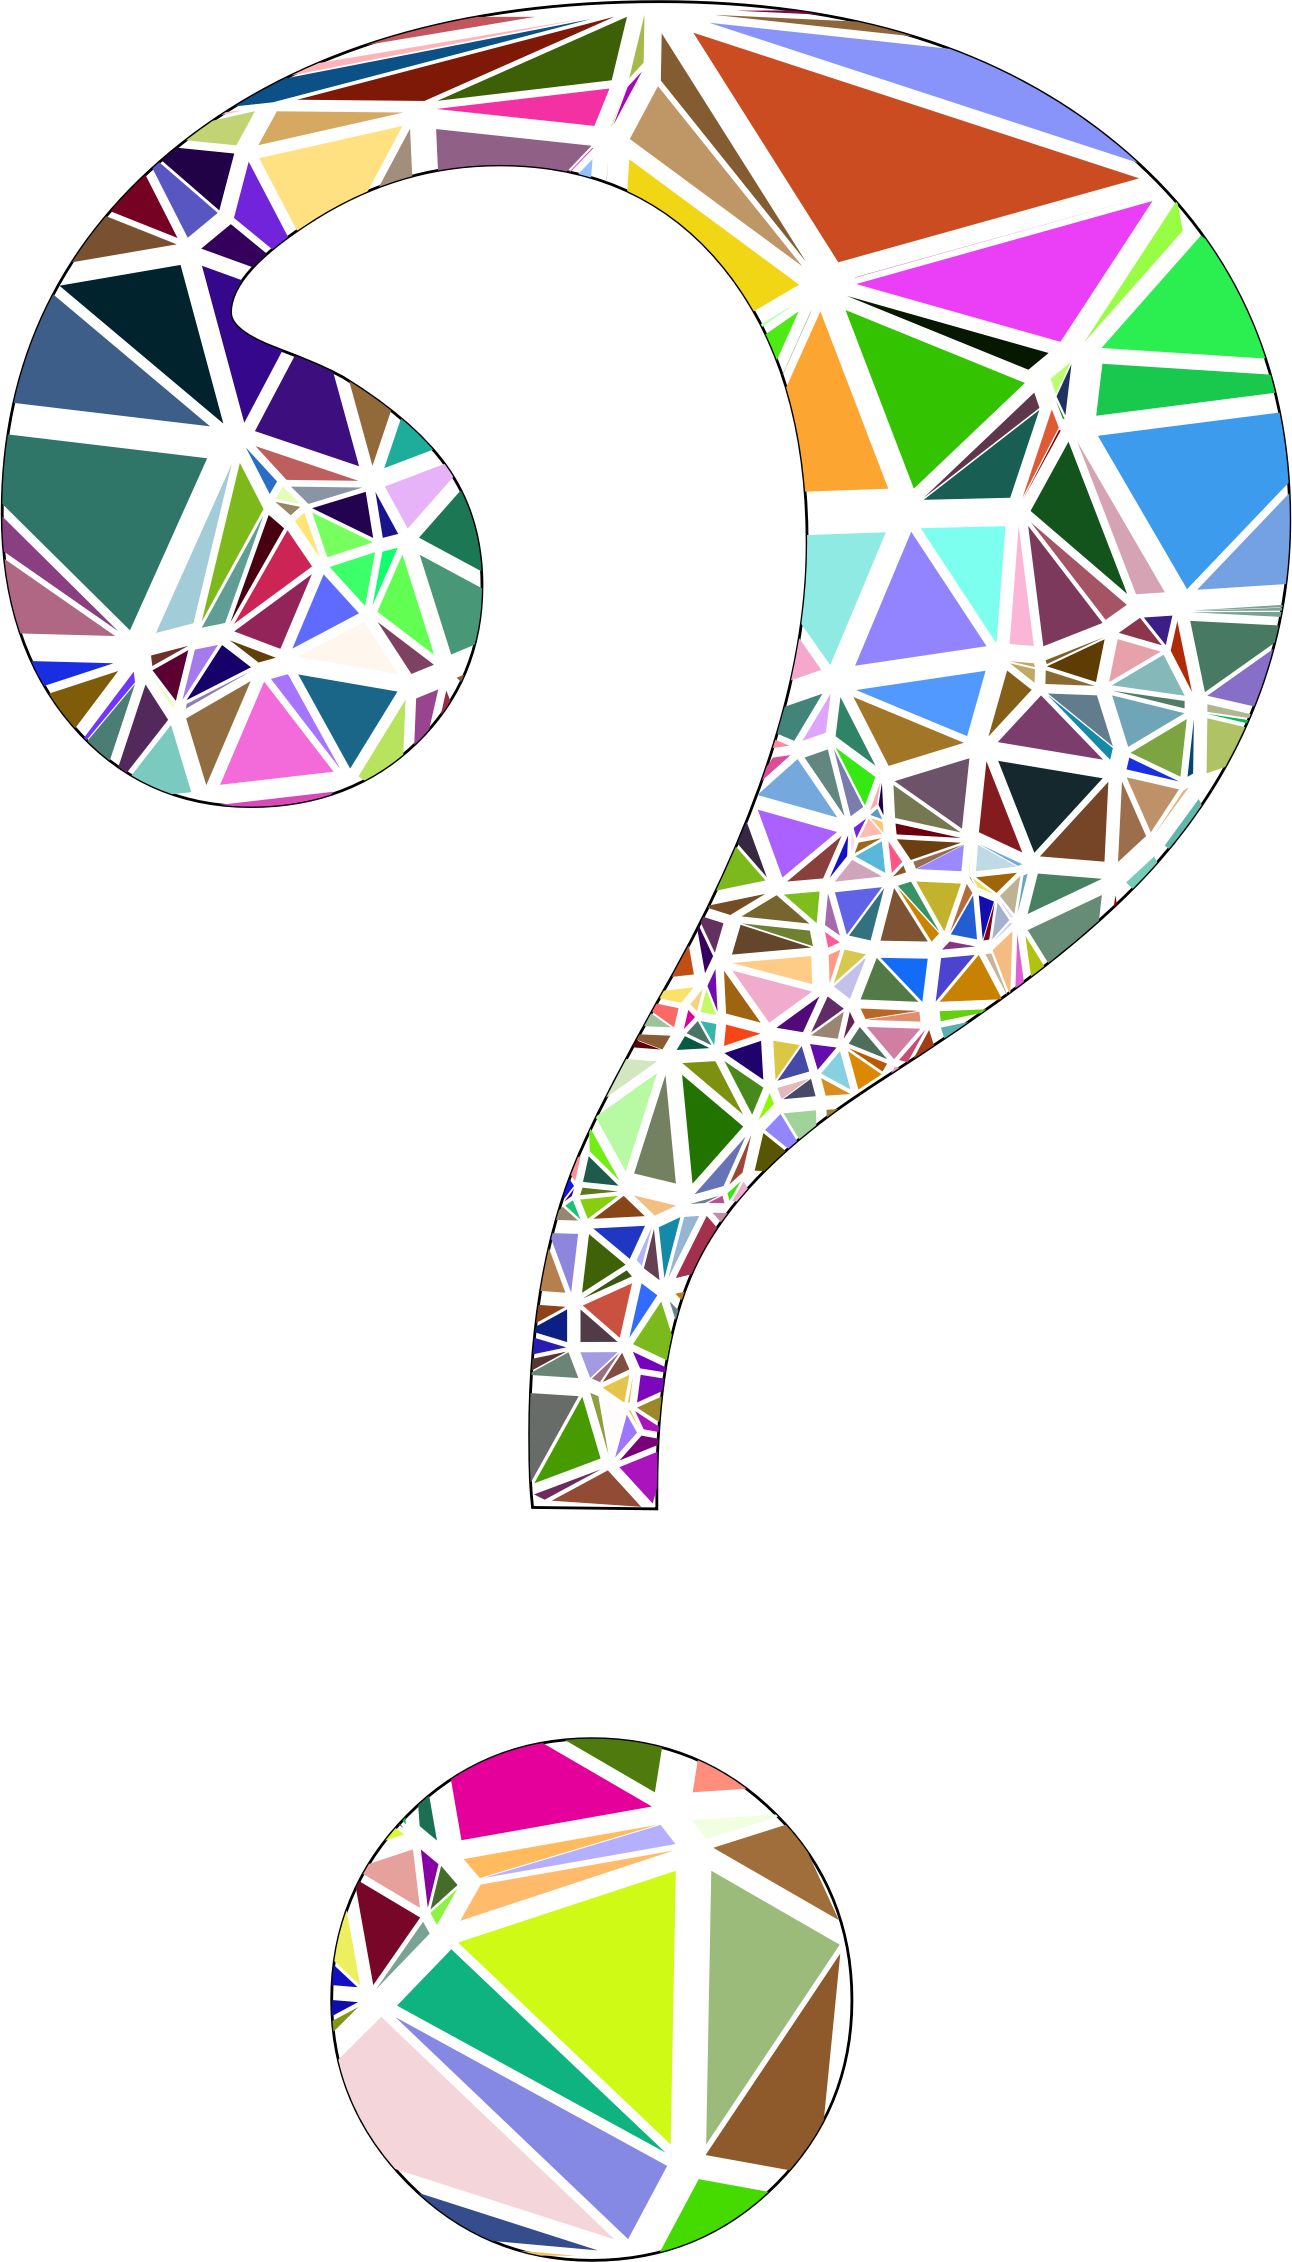 Low Poly Shattered Question Mark With Stroke by GDJ